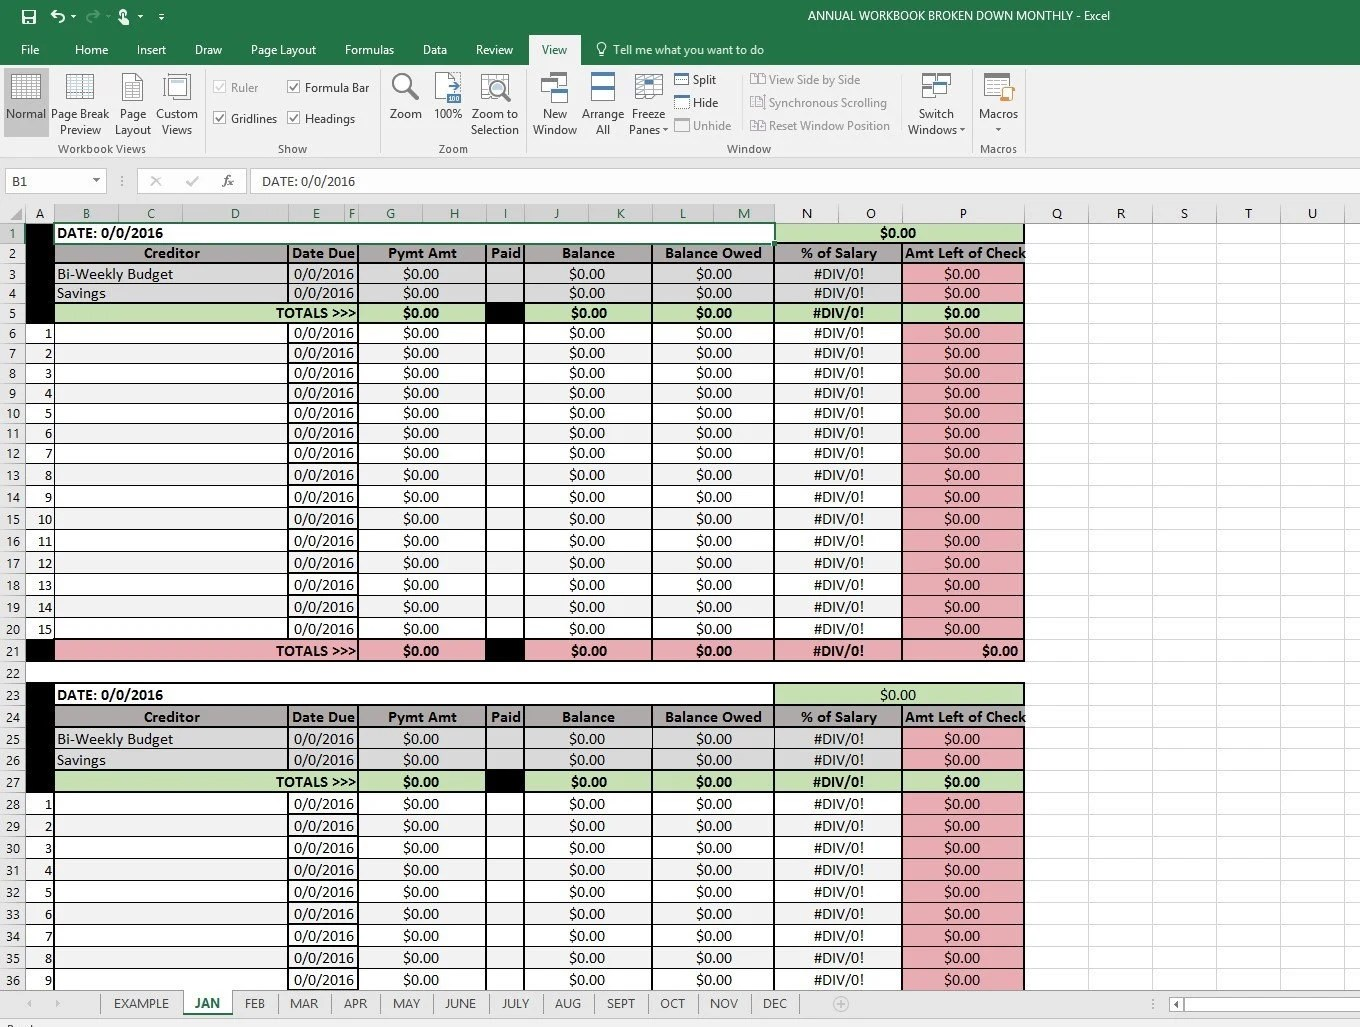 12 Month Budget Plan Spreadsheet With Click Instruction